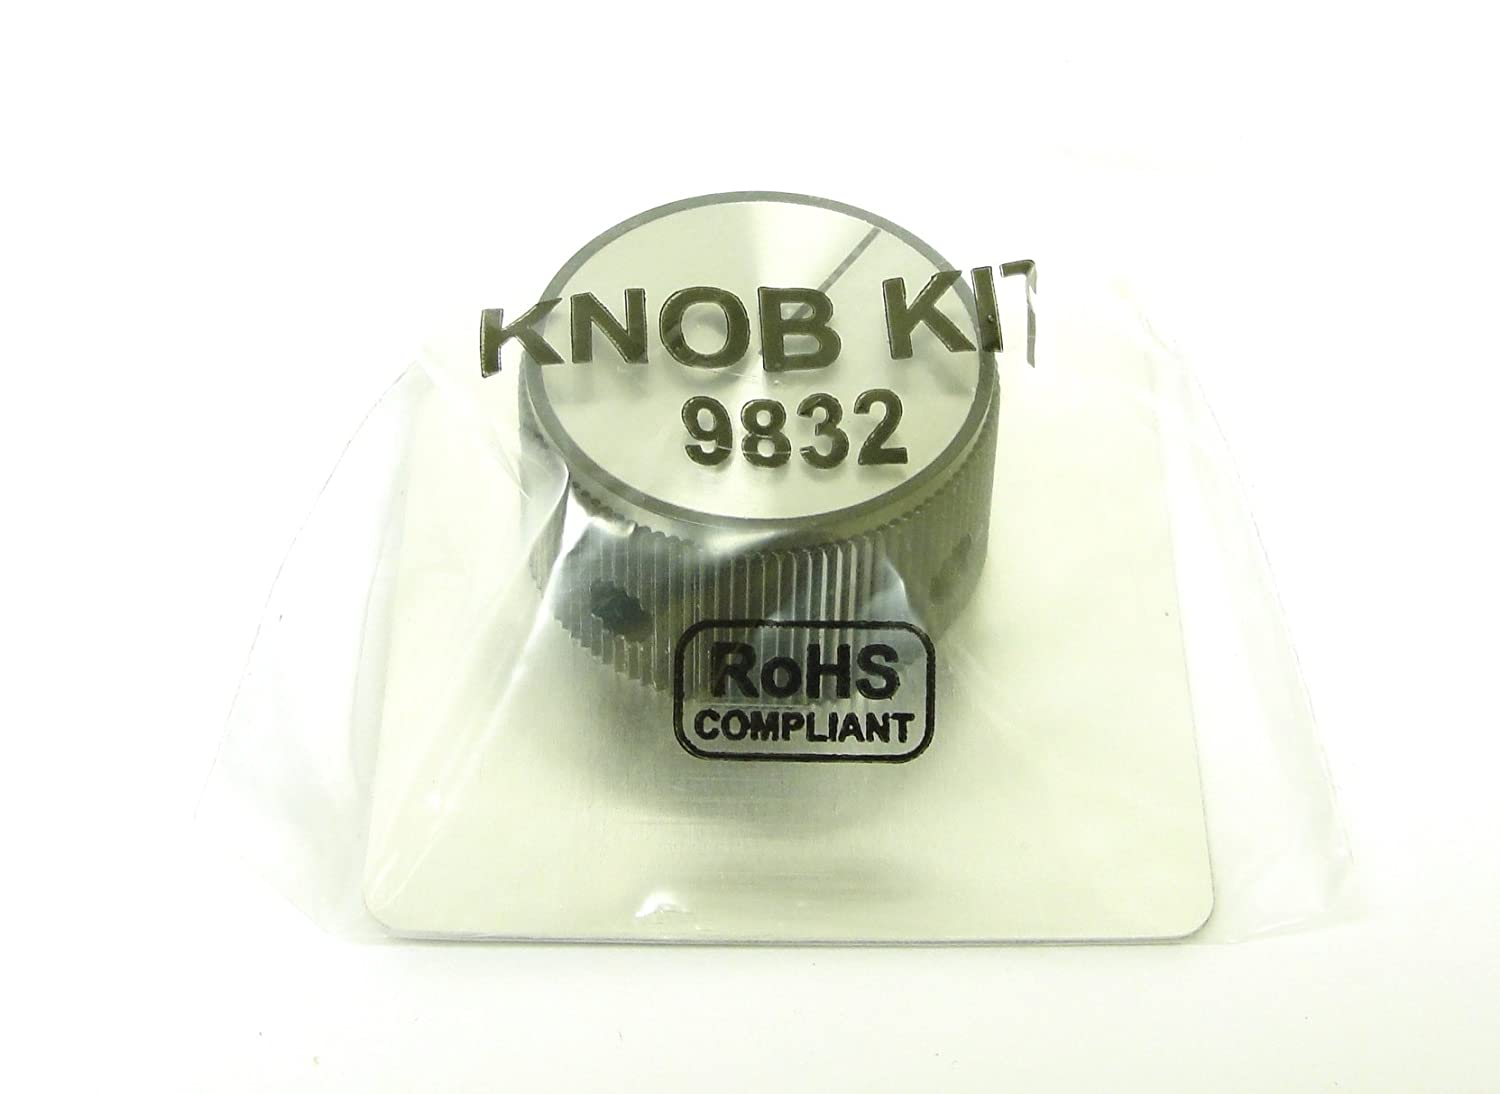 KB Electronics 9832 - Knob and Dial Kit - Large Dial Plate